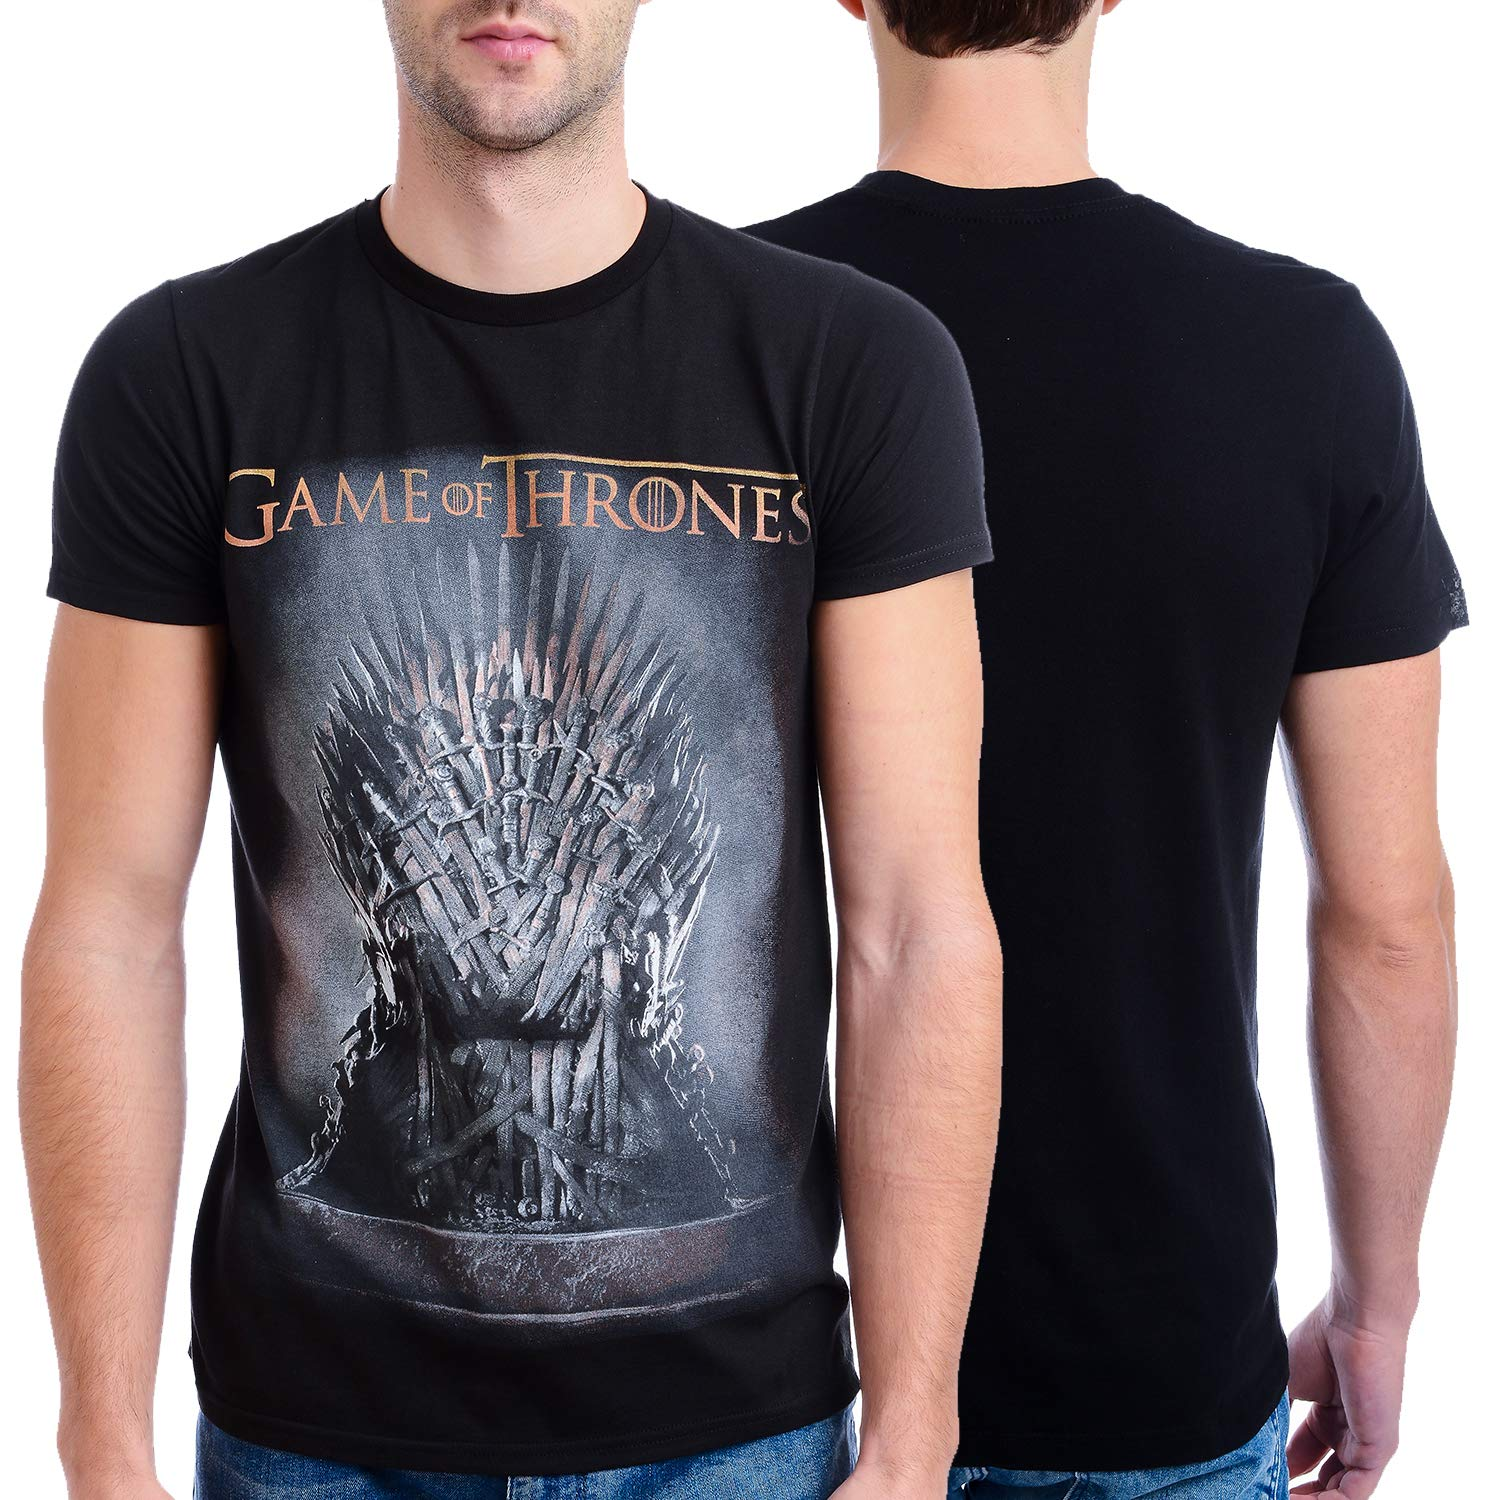 ccd9e3107 Amazon.com: HBO'S Game of Thrones Men's Throne T-Shirt: Clothing